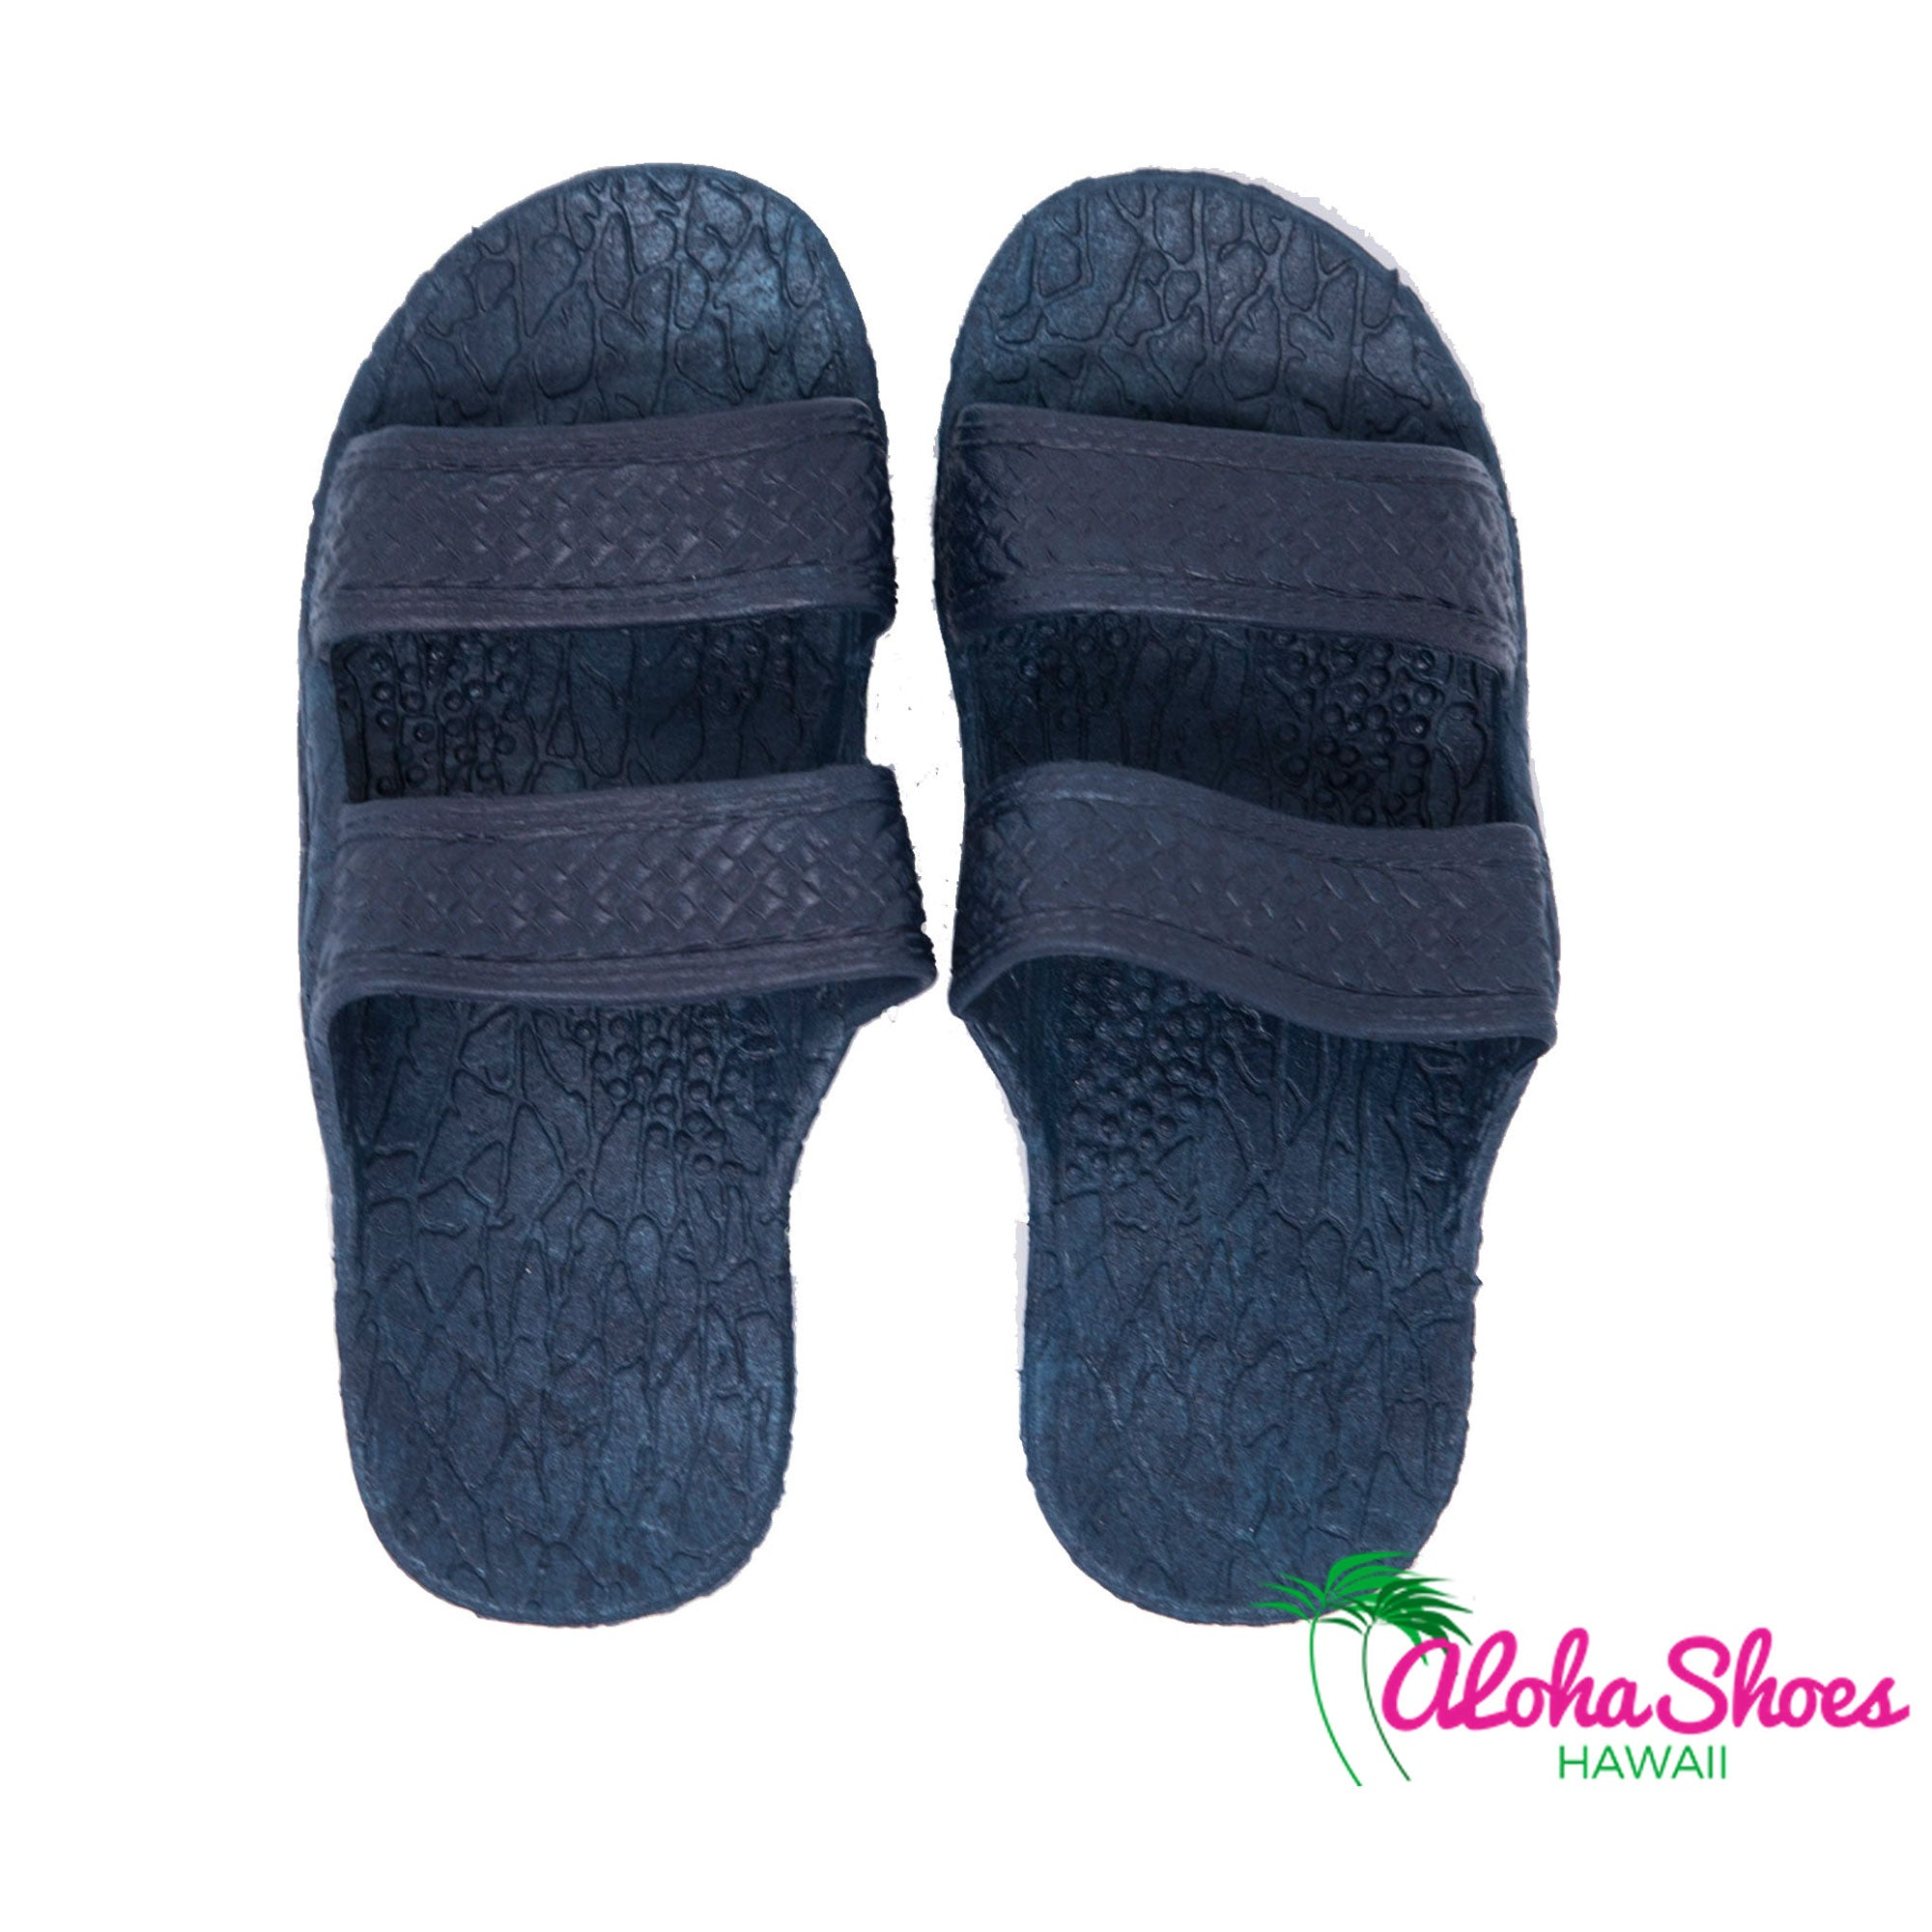 Pali Hawaii Sandals Navy Jandals - AlohaShoes.com